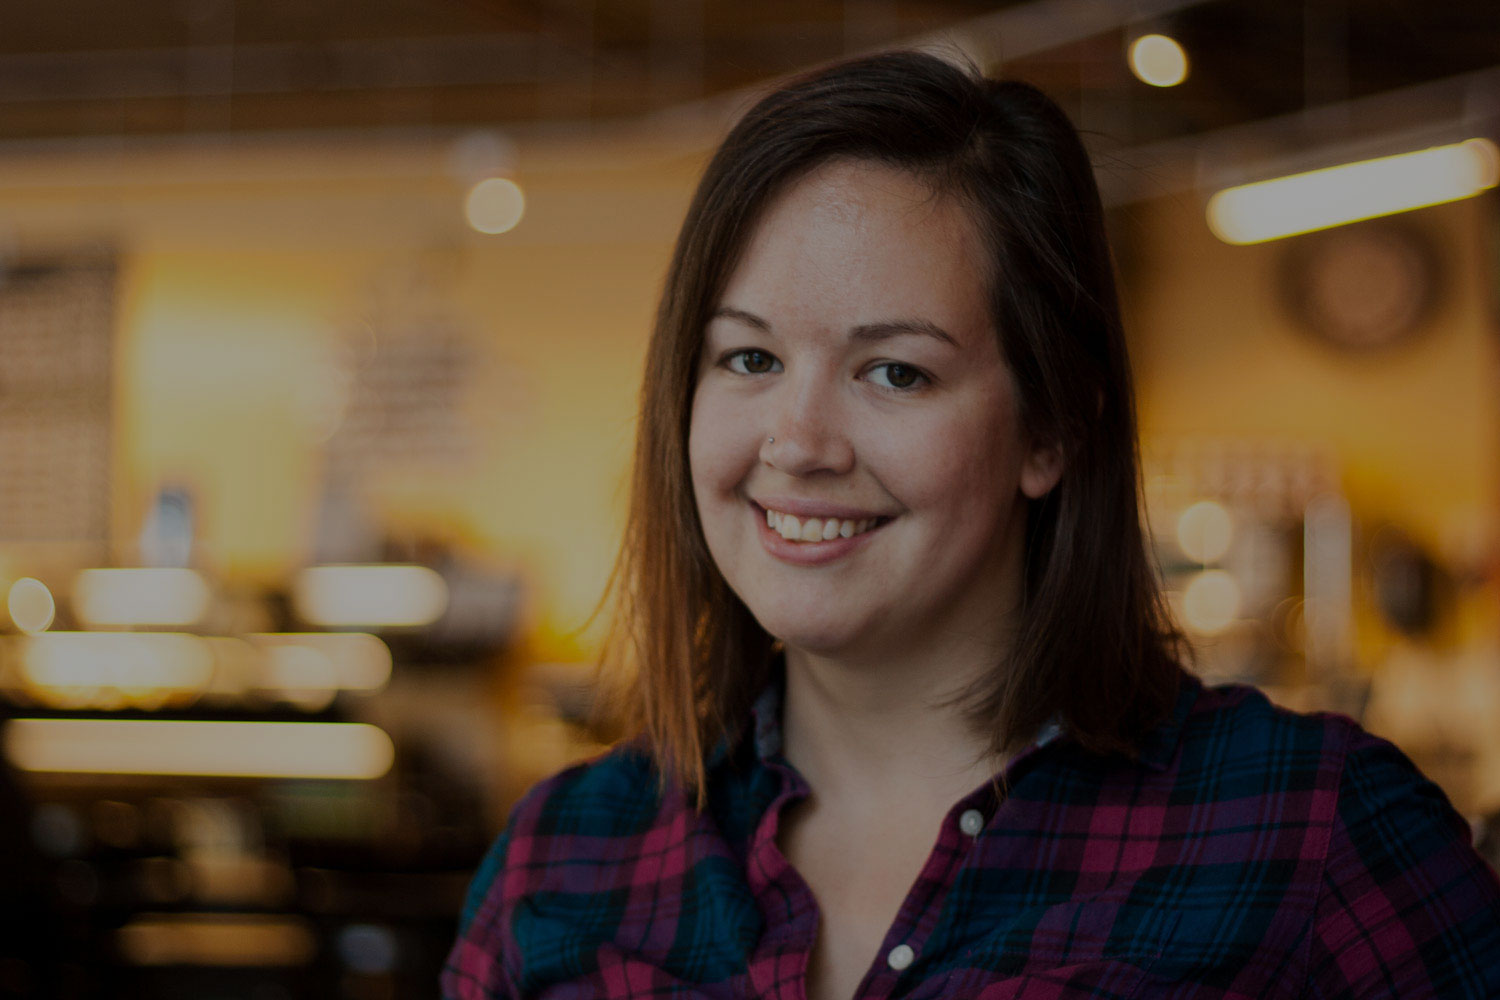 Why should you learn how to build web apps? My interview with Nicole Ziemlak.